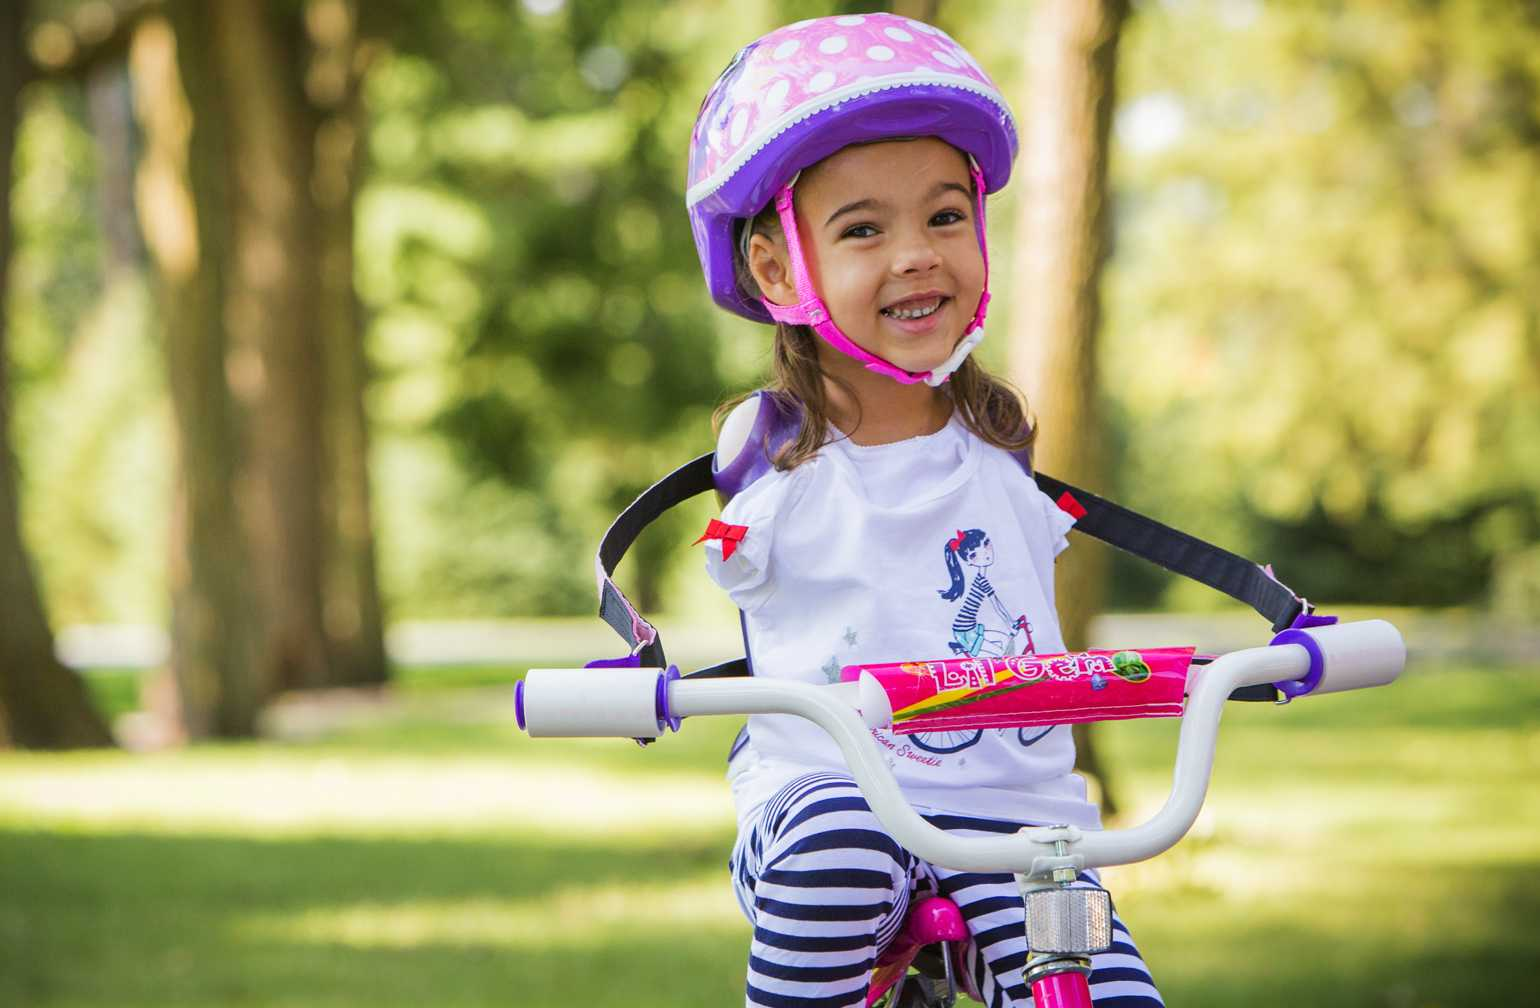 Ruth Evelyn, Gillette Children's patient who was born without arms poses with her bike